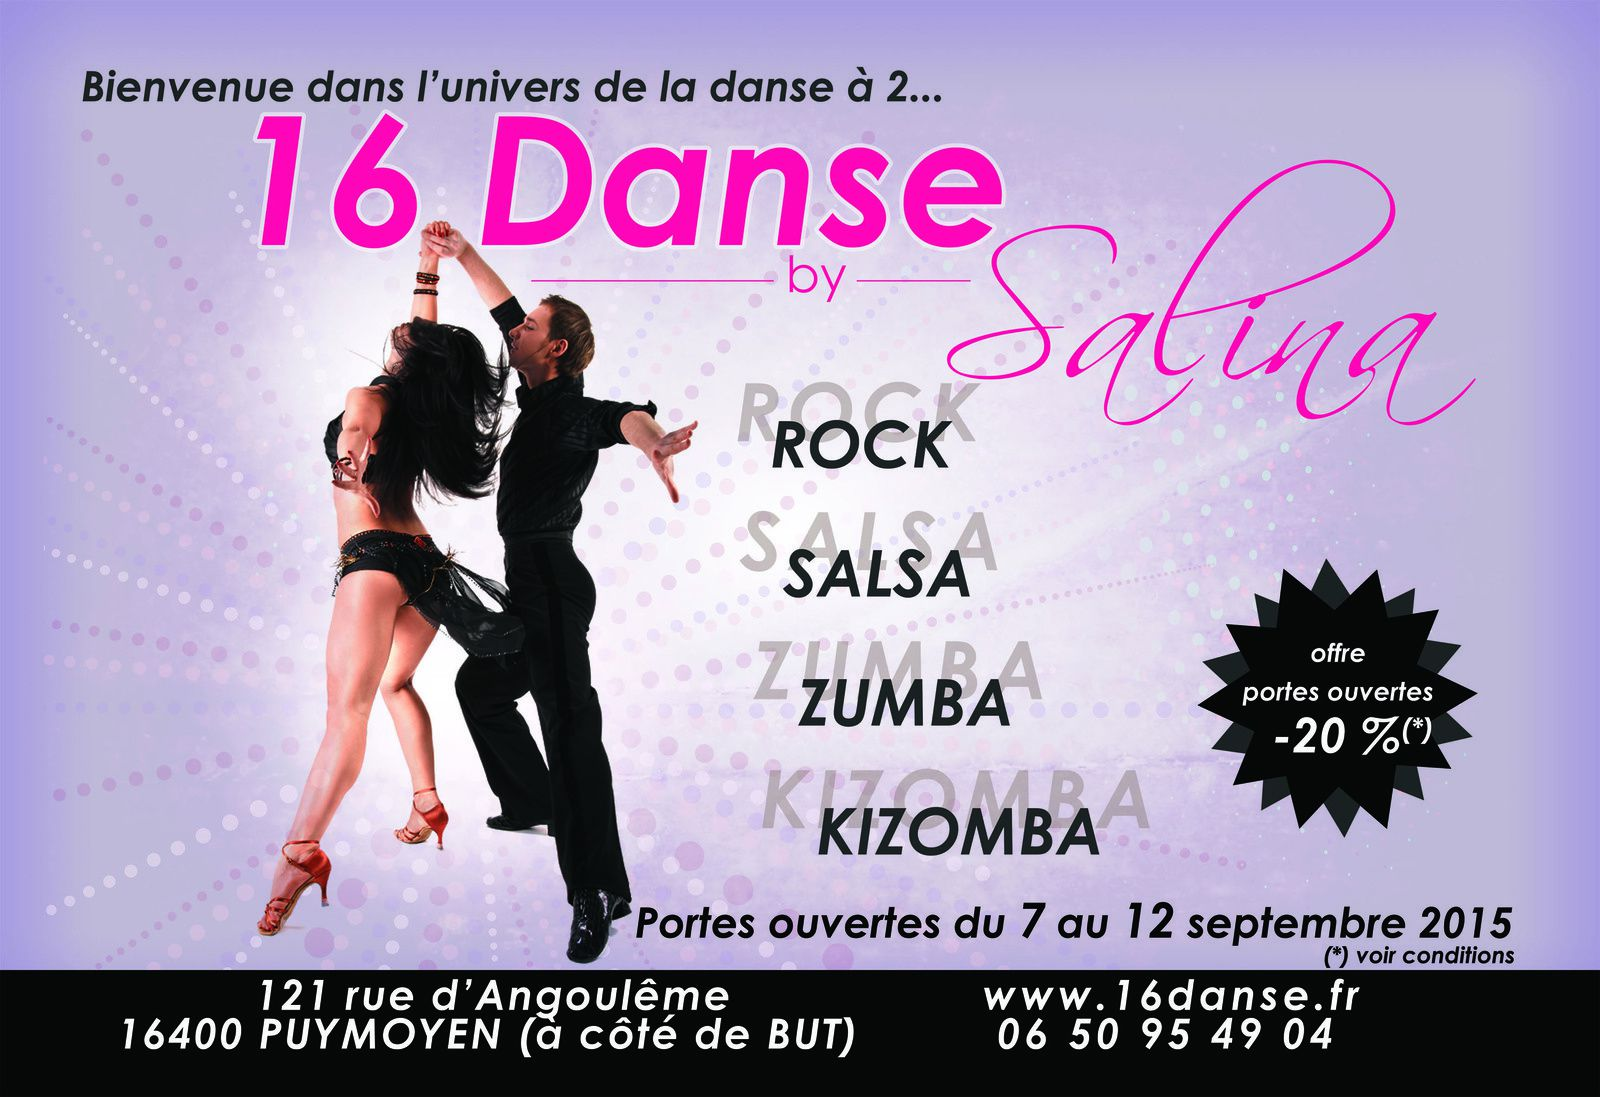 "realisation d'une affiche publicitaire pour une amie qui tient une école de danse ""16 Danse by Salina"" / I made an advertising poster for a friend. She has a dancing school ""16 Danse by Salina"""